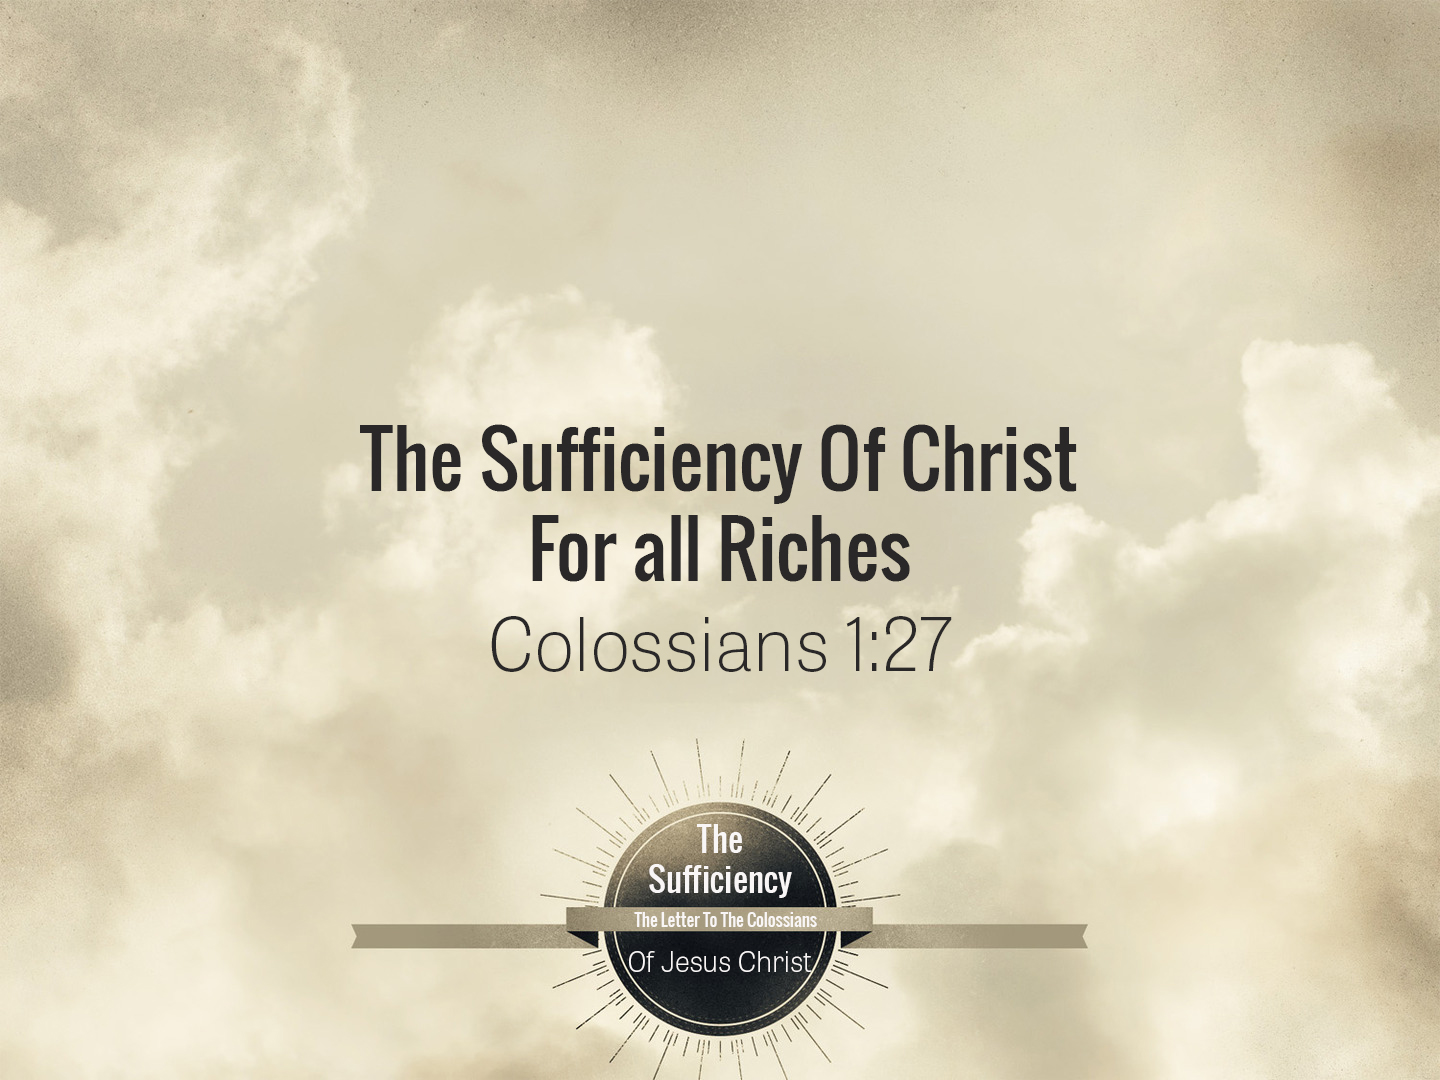 Colossians 1v27 The Sufficiency Of Christ For All Riches